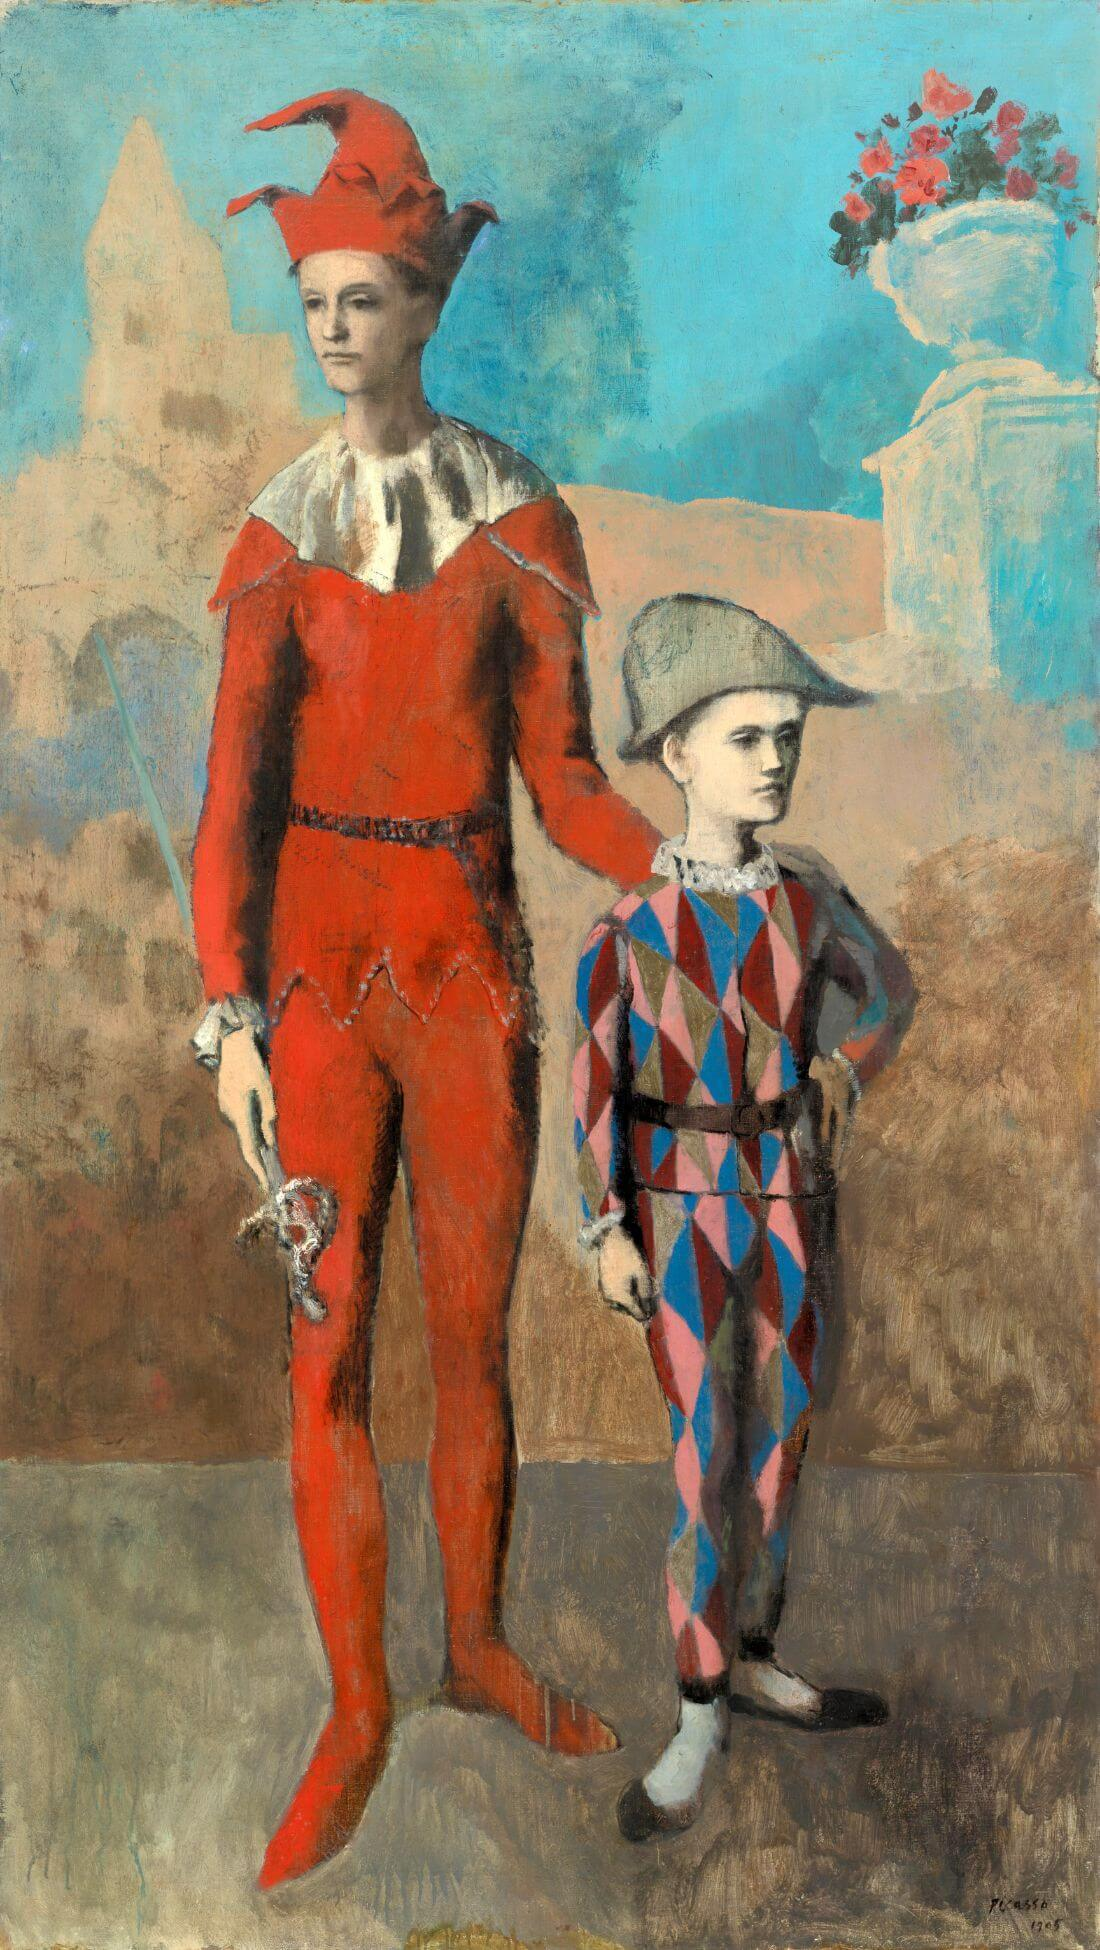 Acrobat And Young Harlequin 1905 (Acróbata y Arlequín Joven) - Pablo  Piccaso - Large Art Prints by Pablo Picasso   Buy Posters, Frames, Canvas &  Digital Art Prints   Small, Compact, Medium and Large Variants